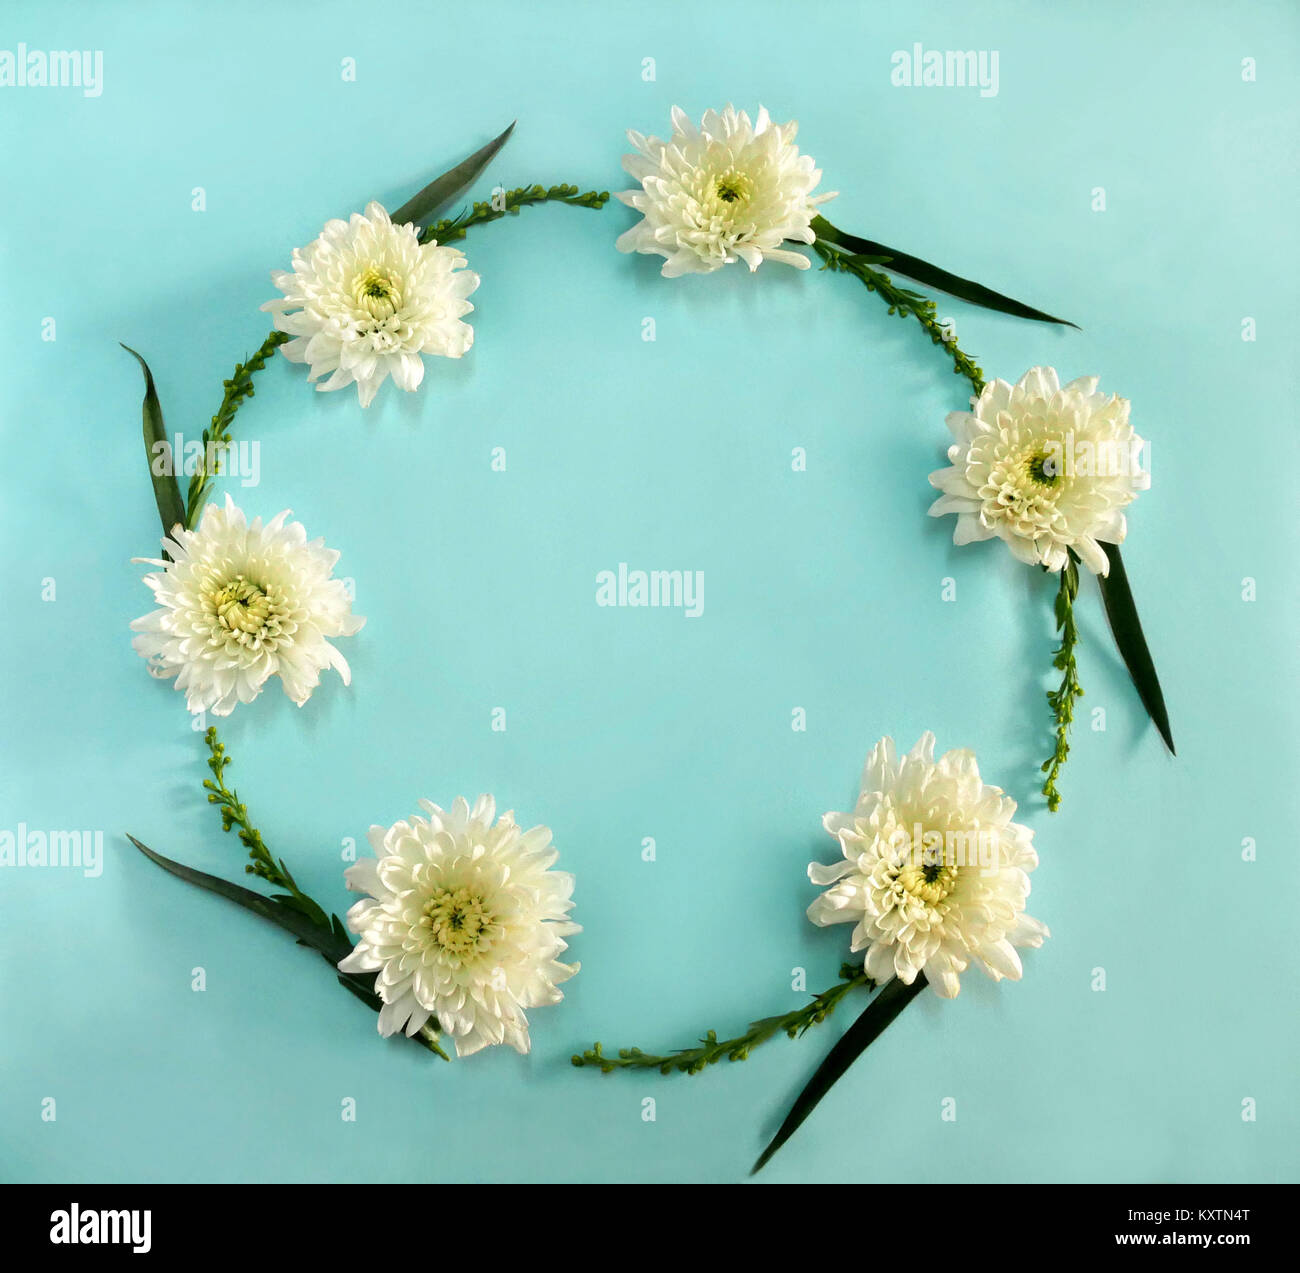 Crown Of Leaves On Top Of Flowers Stock Photos Crown Of Leaves On